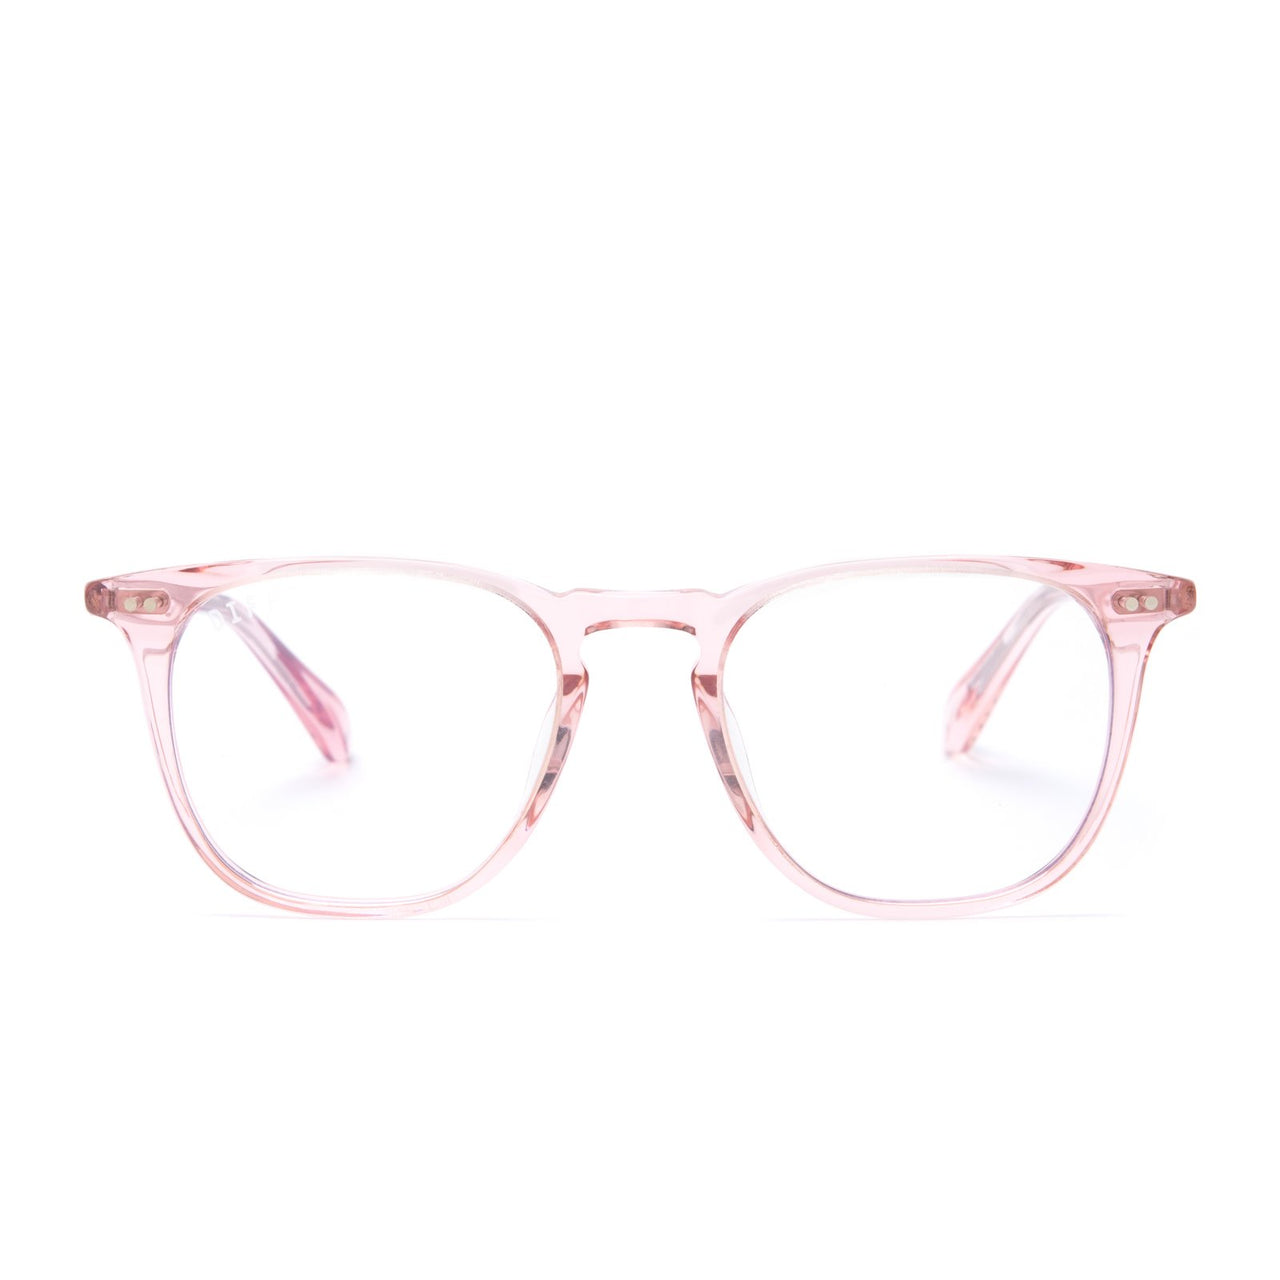 Maxwell prescription glasses with light pink frames front view